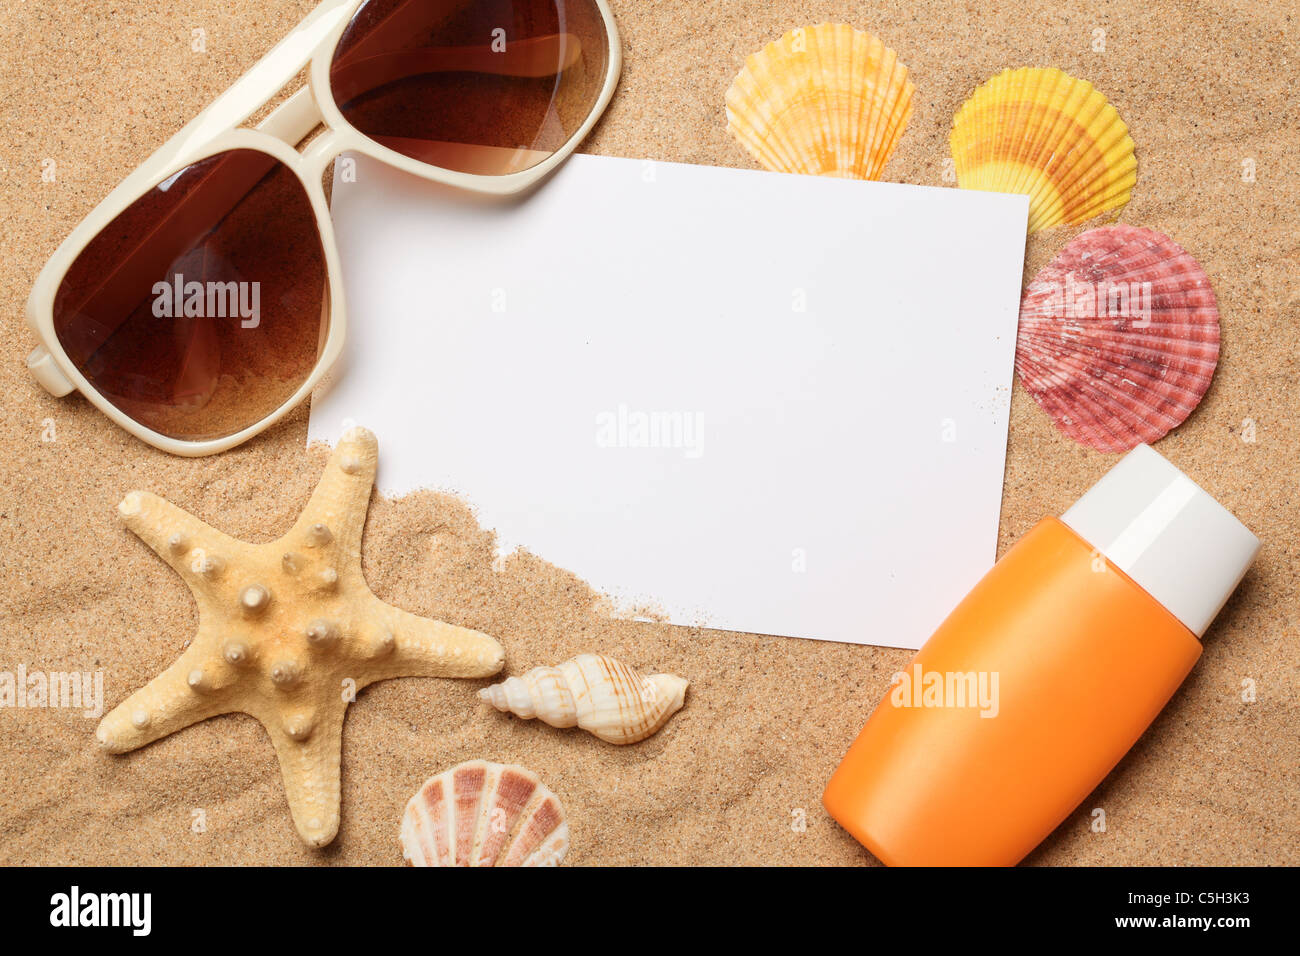 Sunglasses,sunblock and seashells with a blank card on sand. - Stock Image